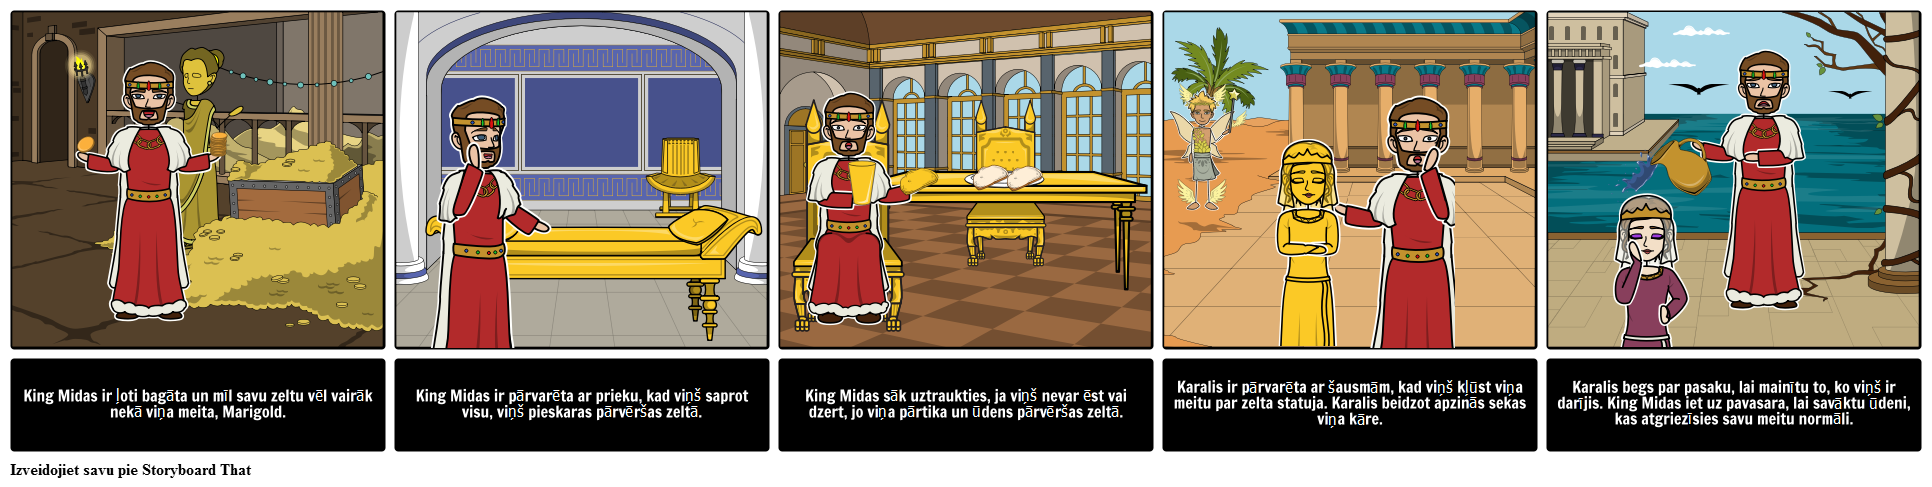 """King Midas """"Golden Touch Character Analysis"""